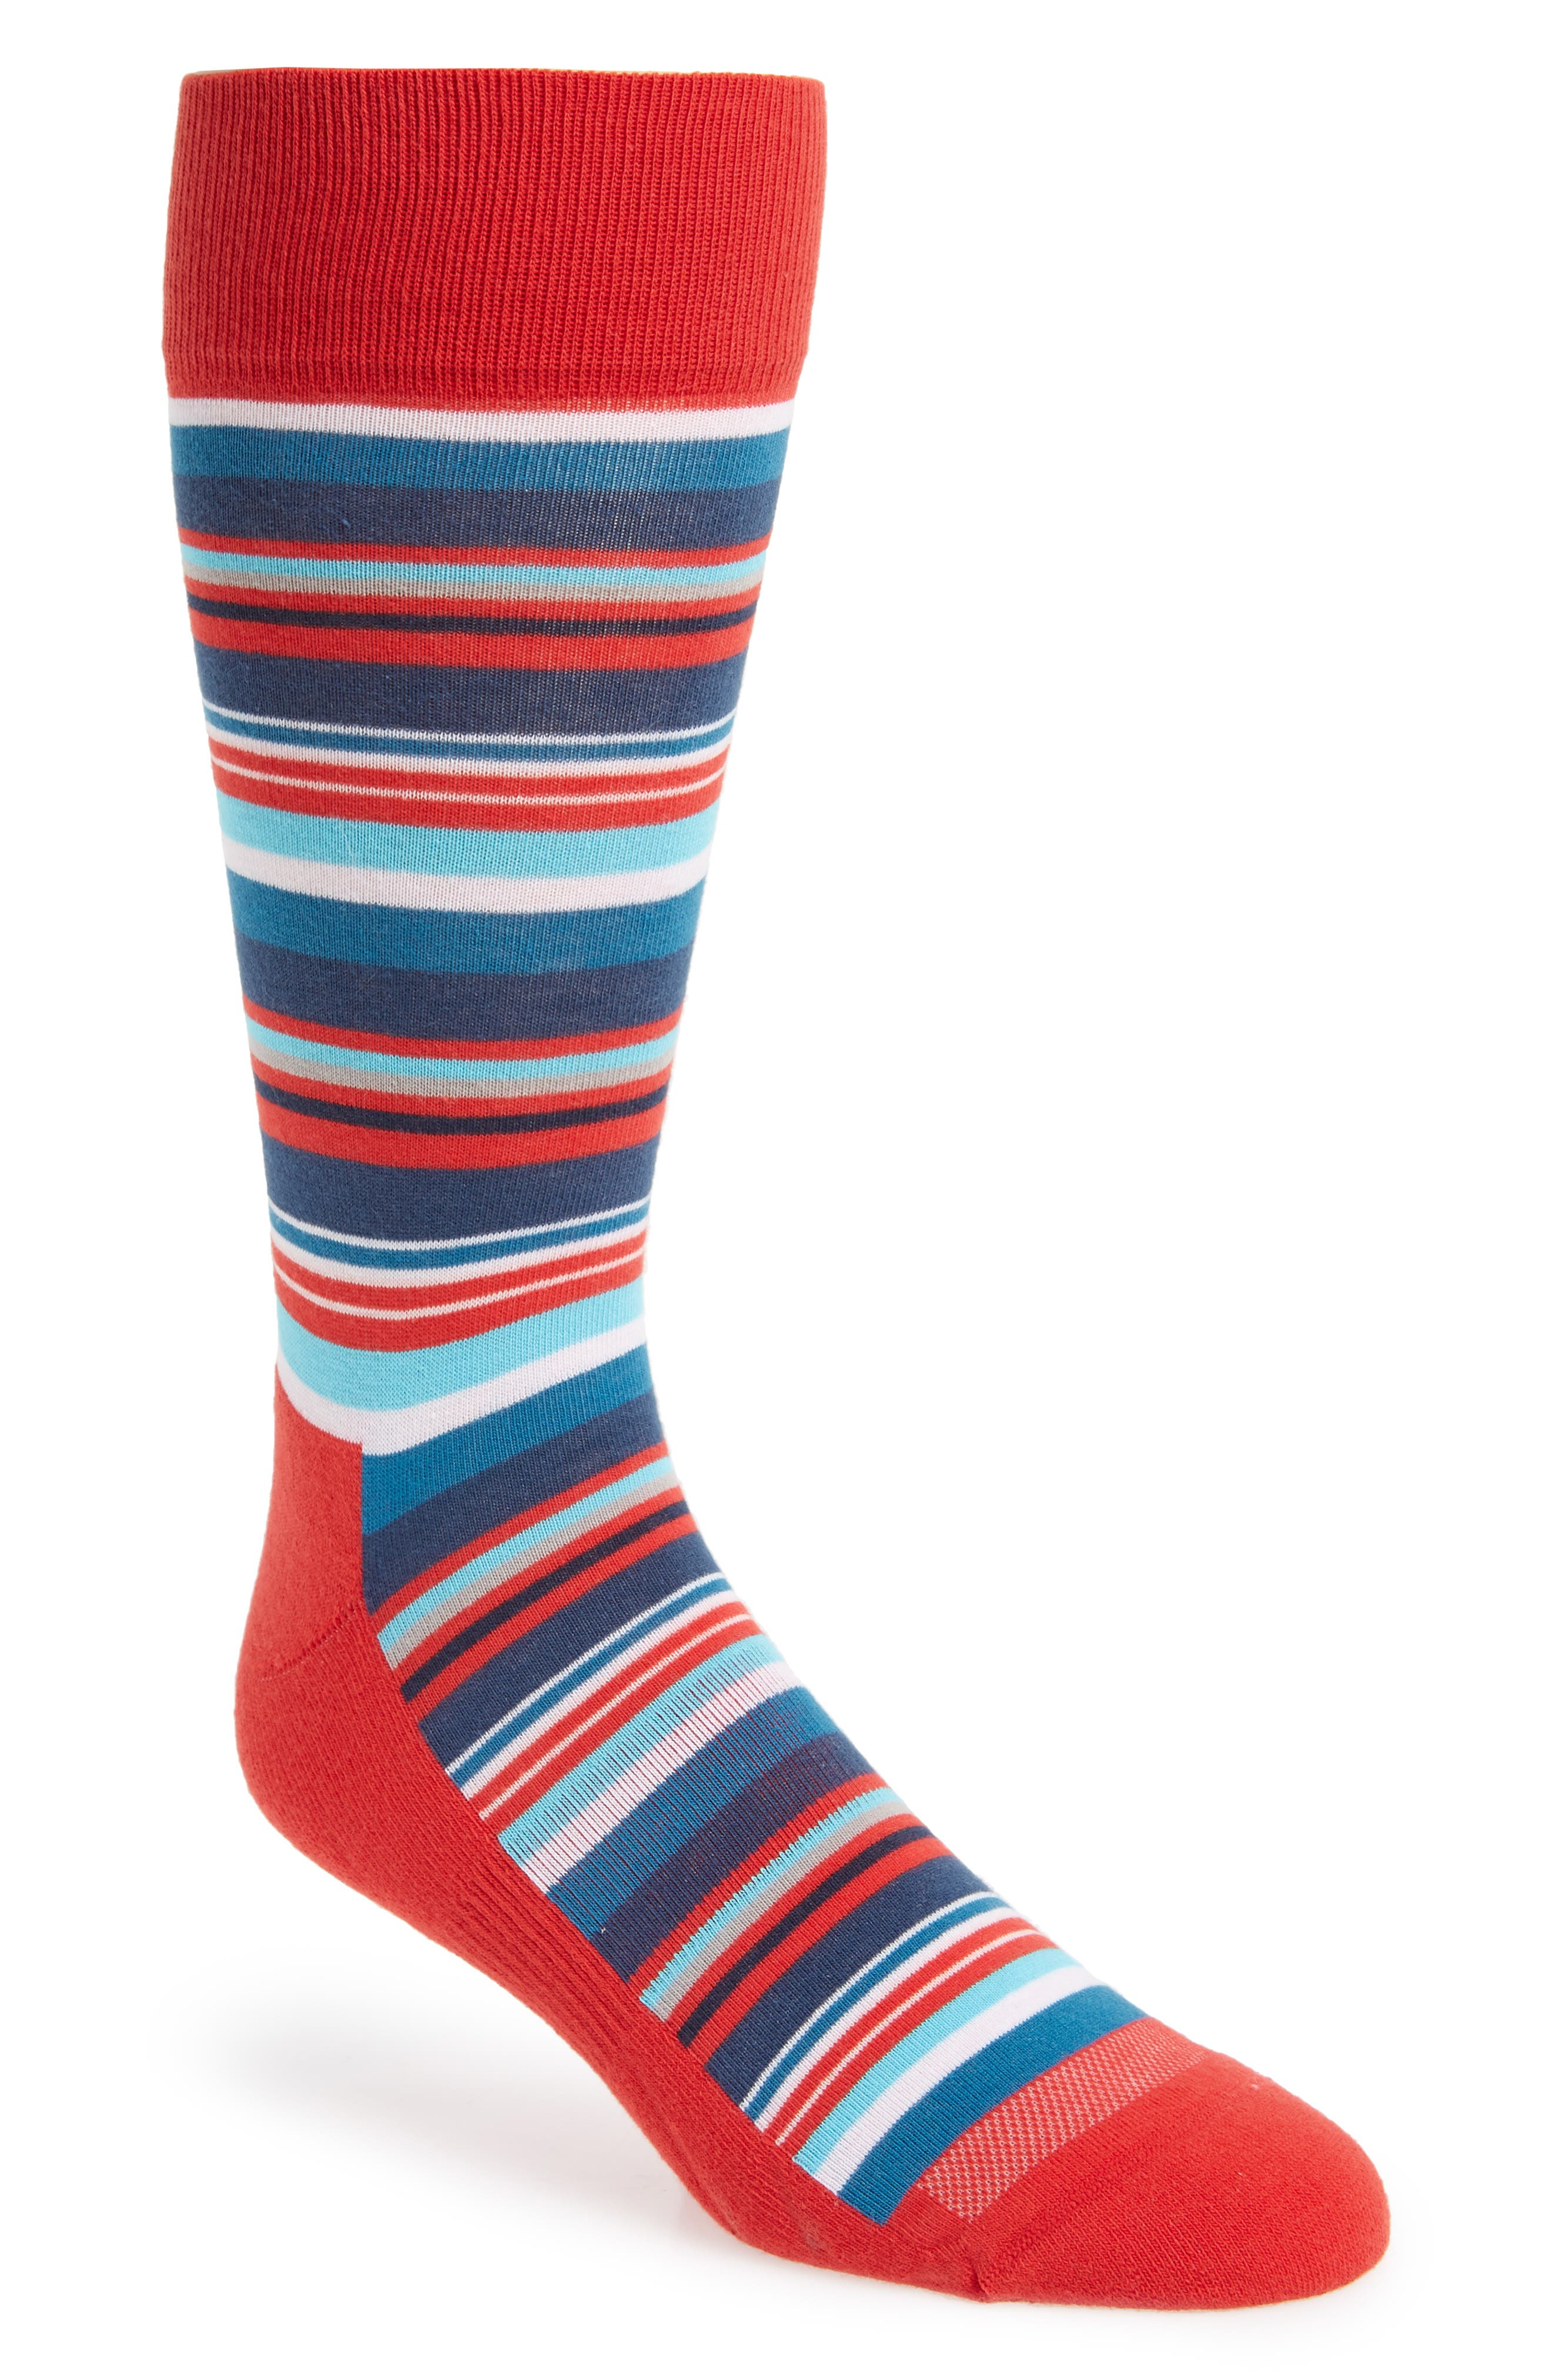 Variegated Stripe Socks,                             Main thumbnail 1, color,                             Red/ White/ Blue